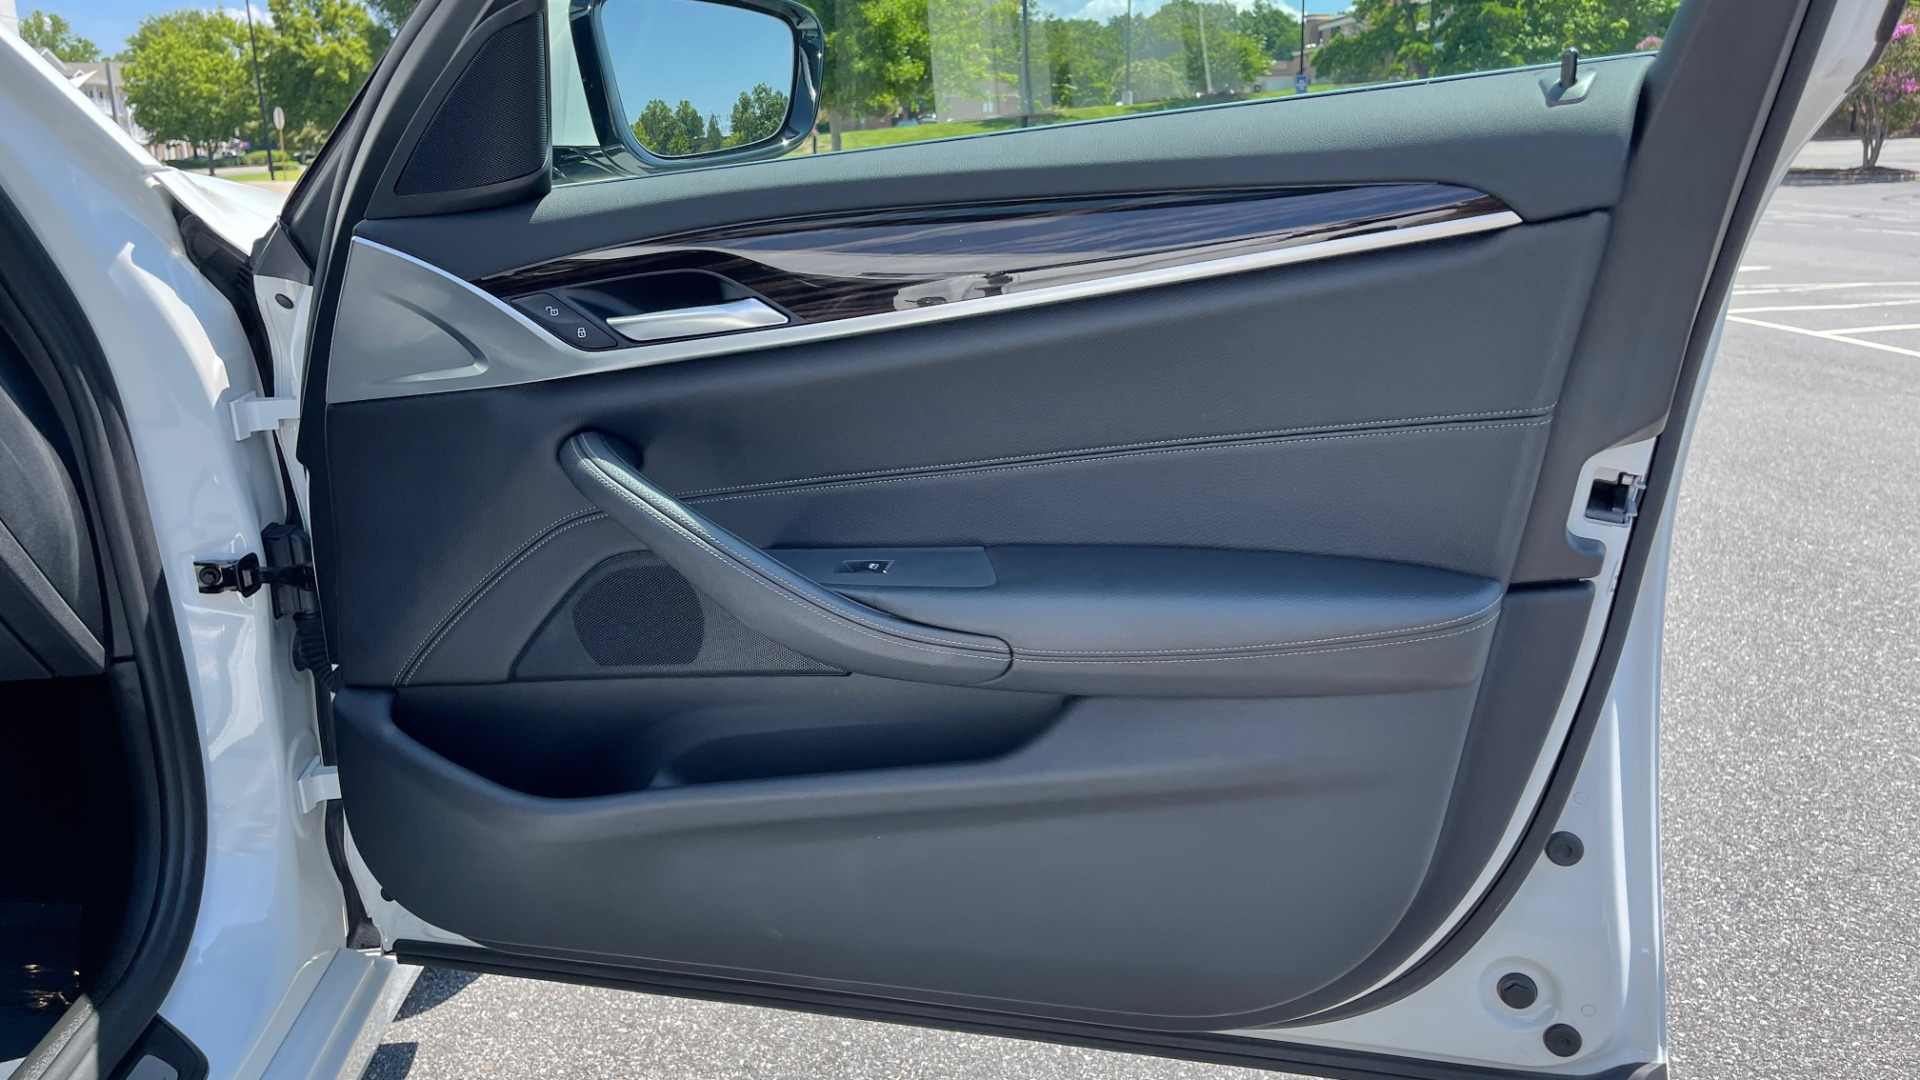 Used 2018 BMW 5 SERIES 540IXDRIVE PREMIUM / PARK ASSIST / KEYLESS ENTRY / SUNROOF / REARVIEW for sale $42,995 at Formula Imports in Charlotte NC 28227 64